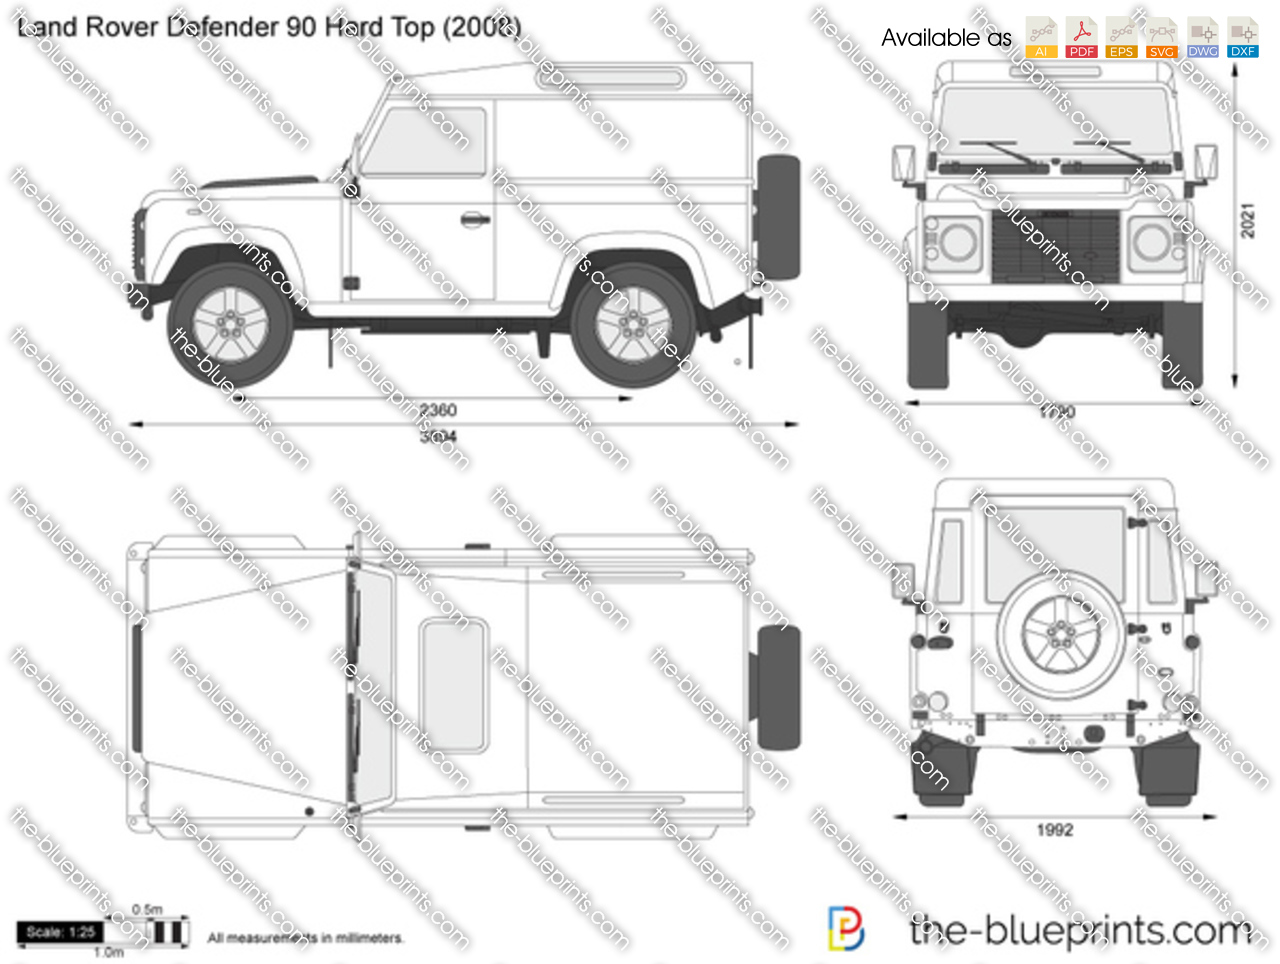 Land Rover Defender 90 Hard Top 2001